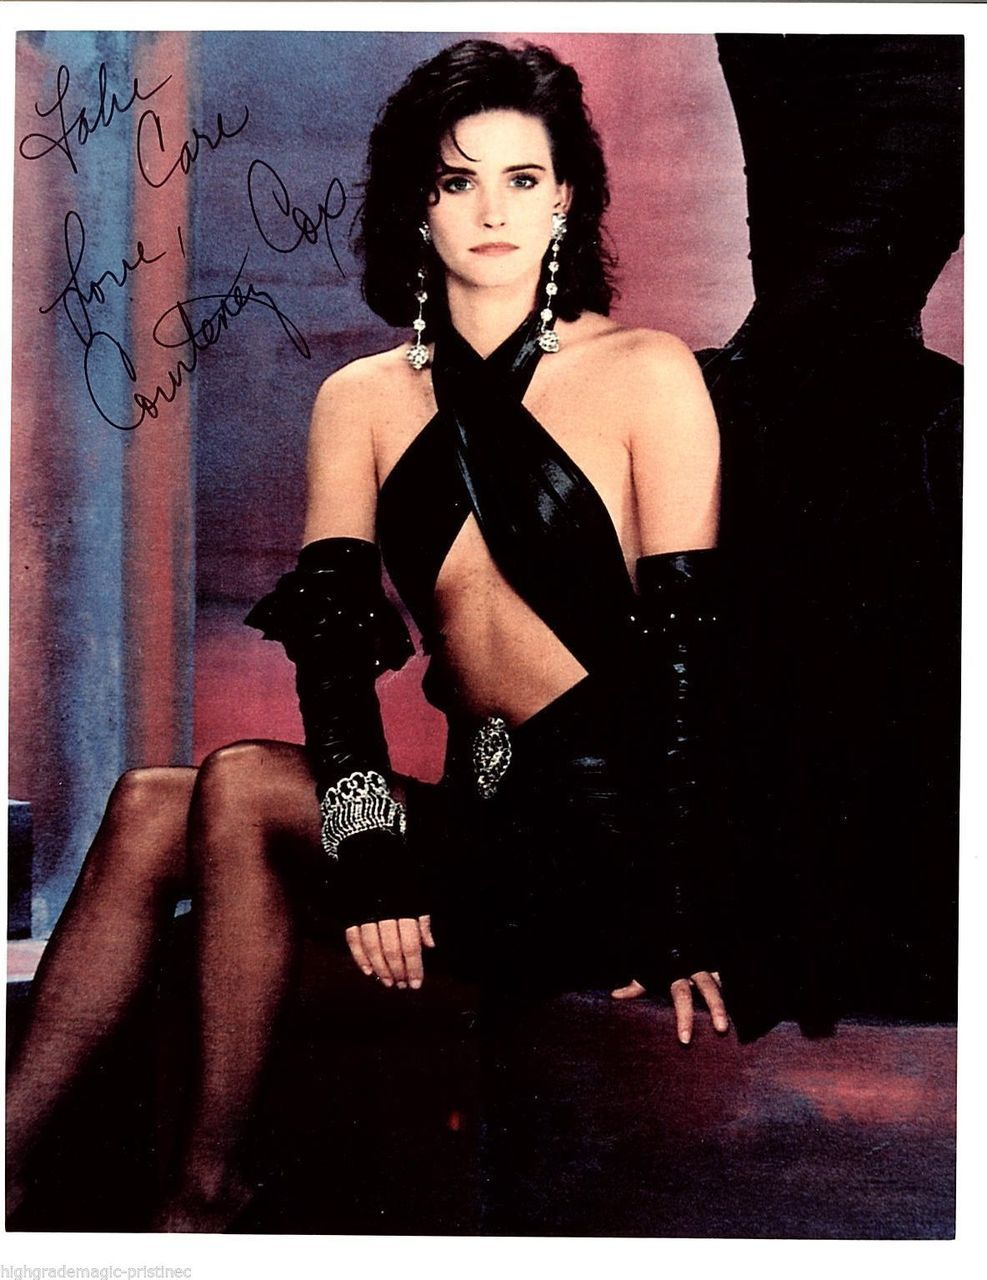 courteney cox sexy pic4